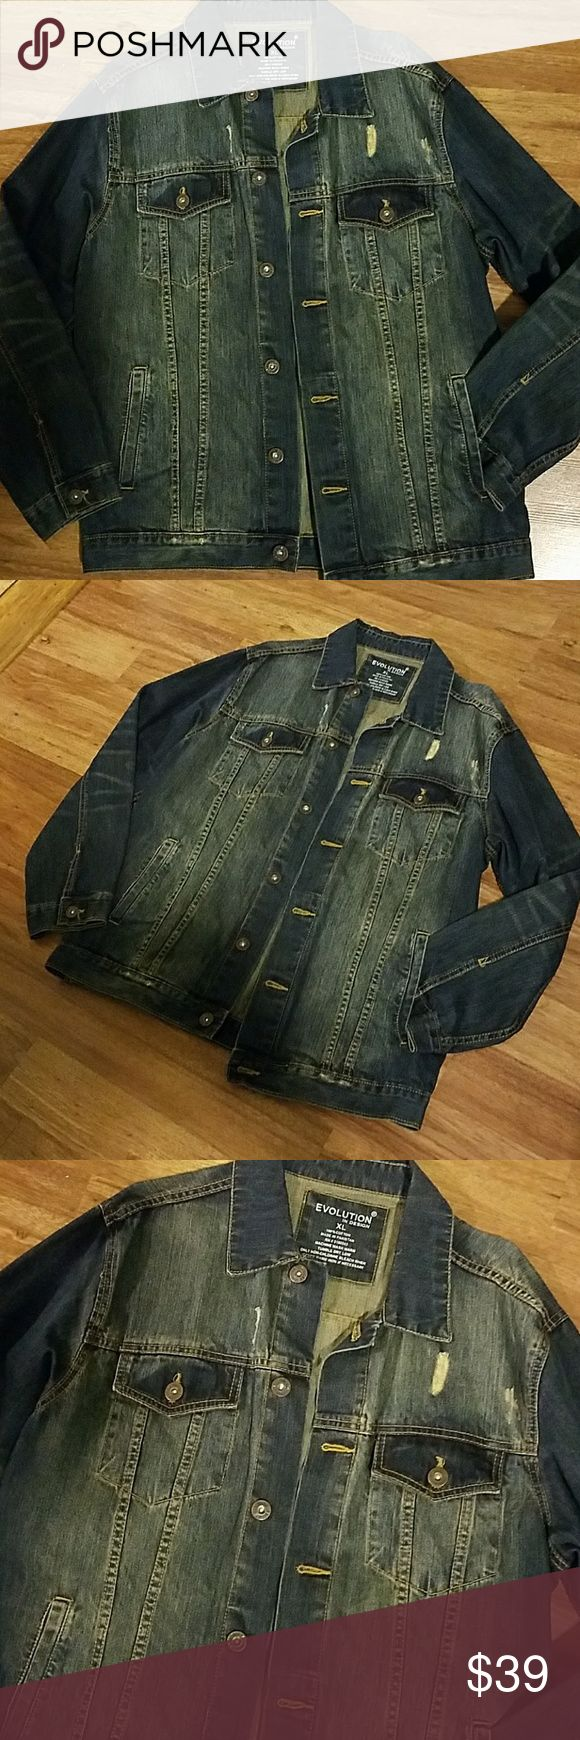 Evolution Denim Distressed Jeans Jacket XL Evolution Design Color Indigo Blue With Gold Stitching  Size XL with distressed design  2 front pockets / 2 chest pockets 100$ Cotton button down jacket Brand new without tags  MACHINE WASH WARM MADE IN PAKISTAN Evolution Jackets & Coats